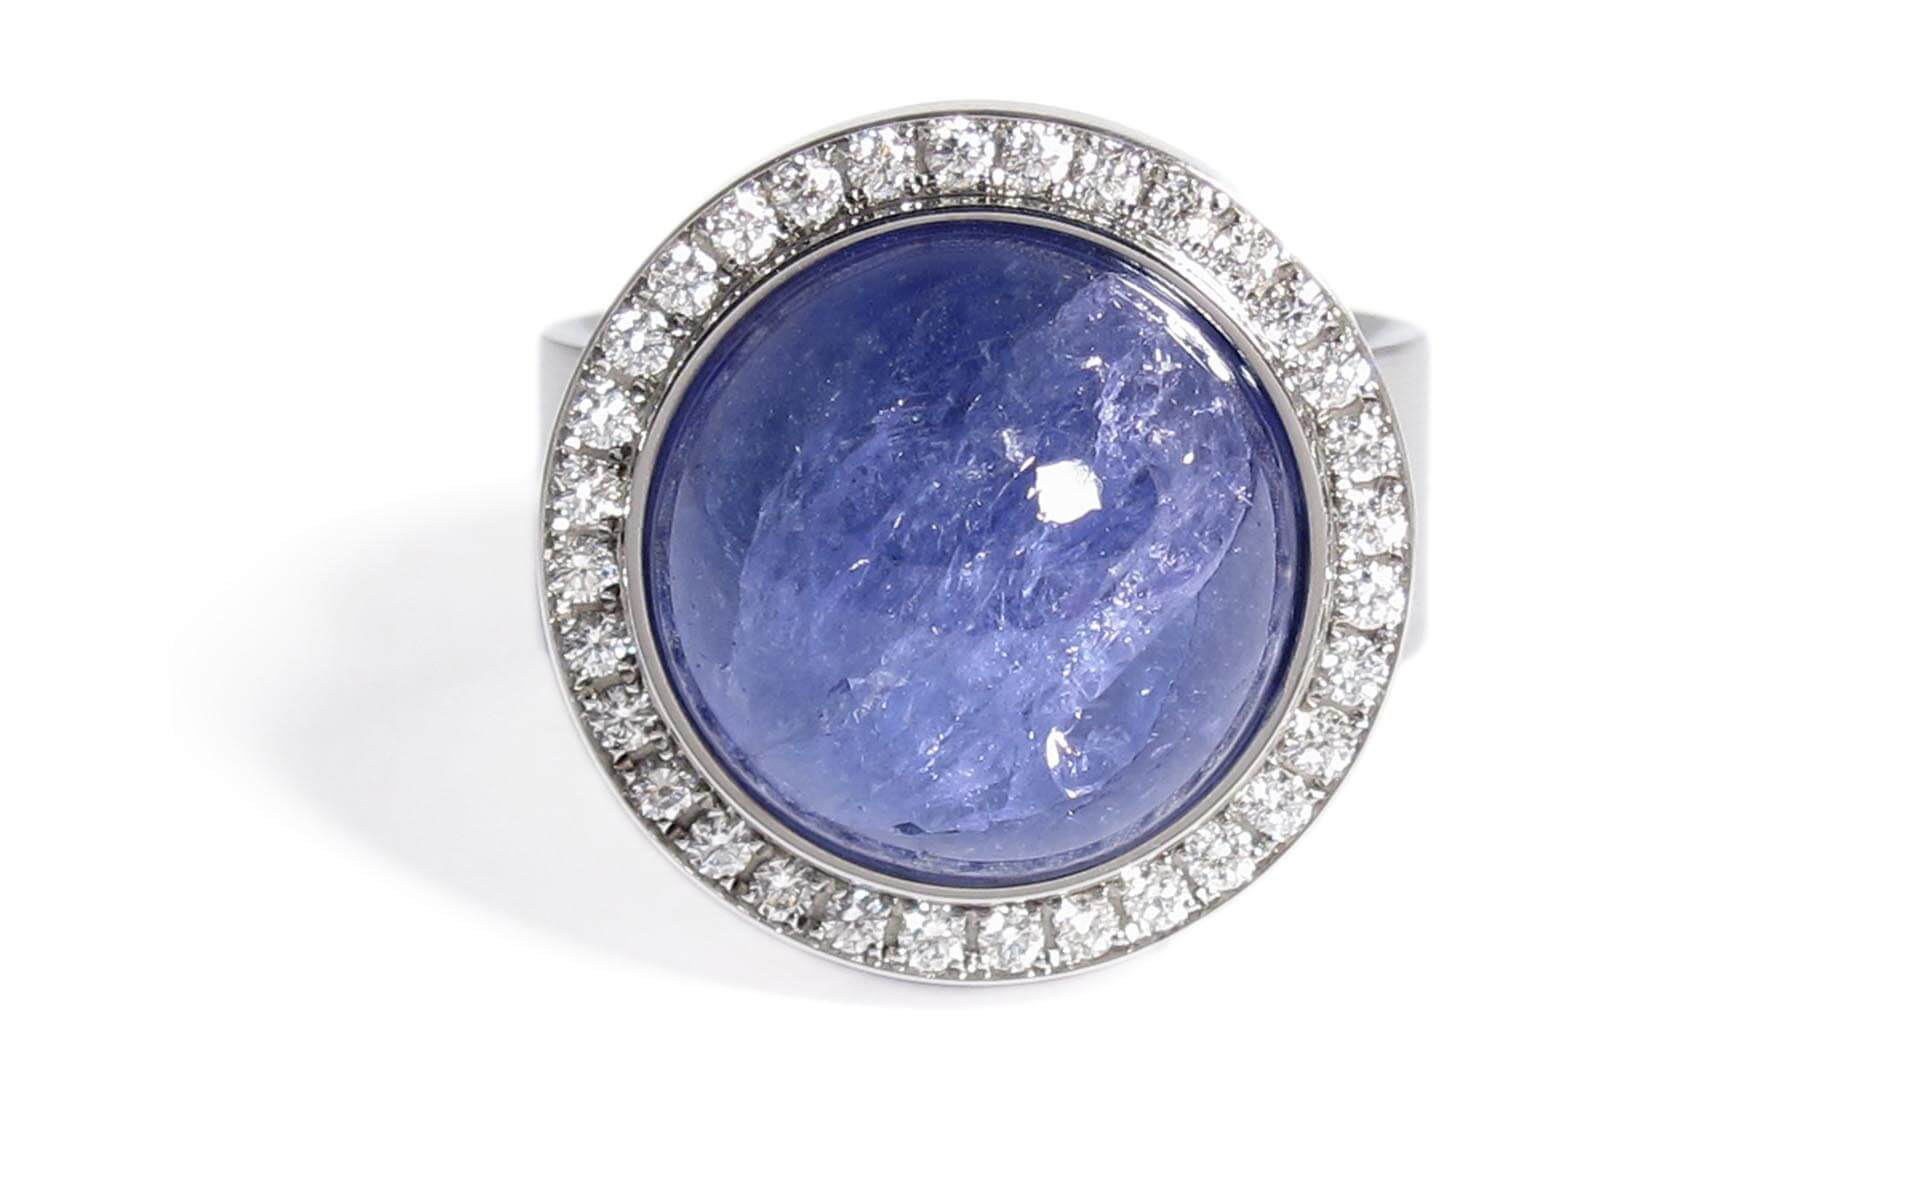 Stainless steel ring featuring a blue tanzanite gem stone with white diamonds set around it by custom jewelry designer Stefan Witjes